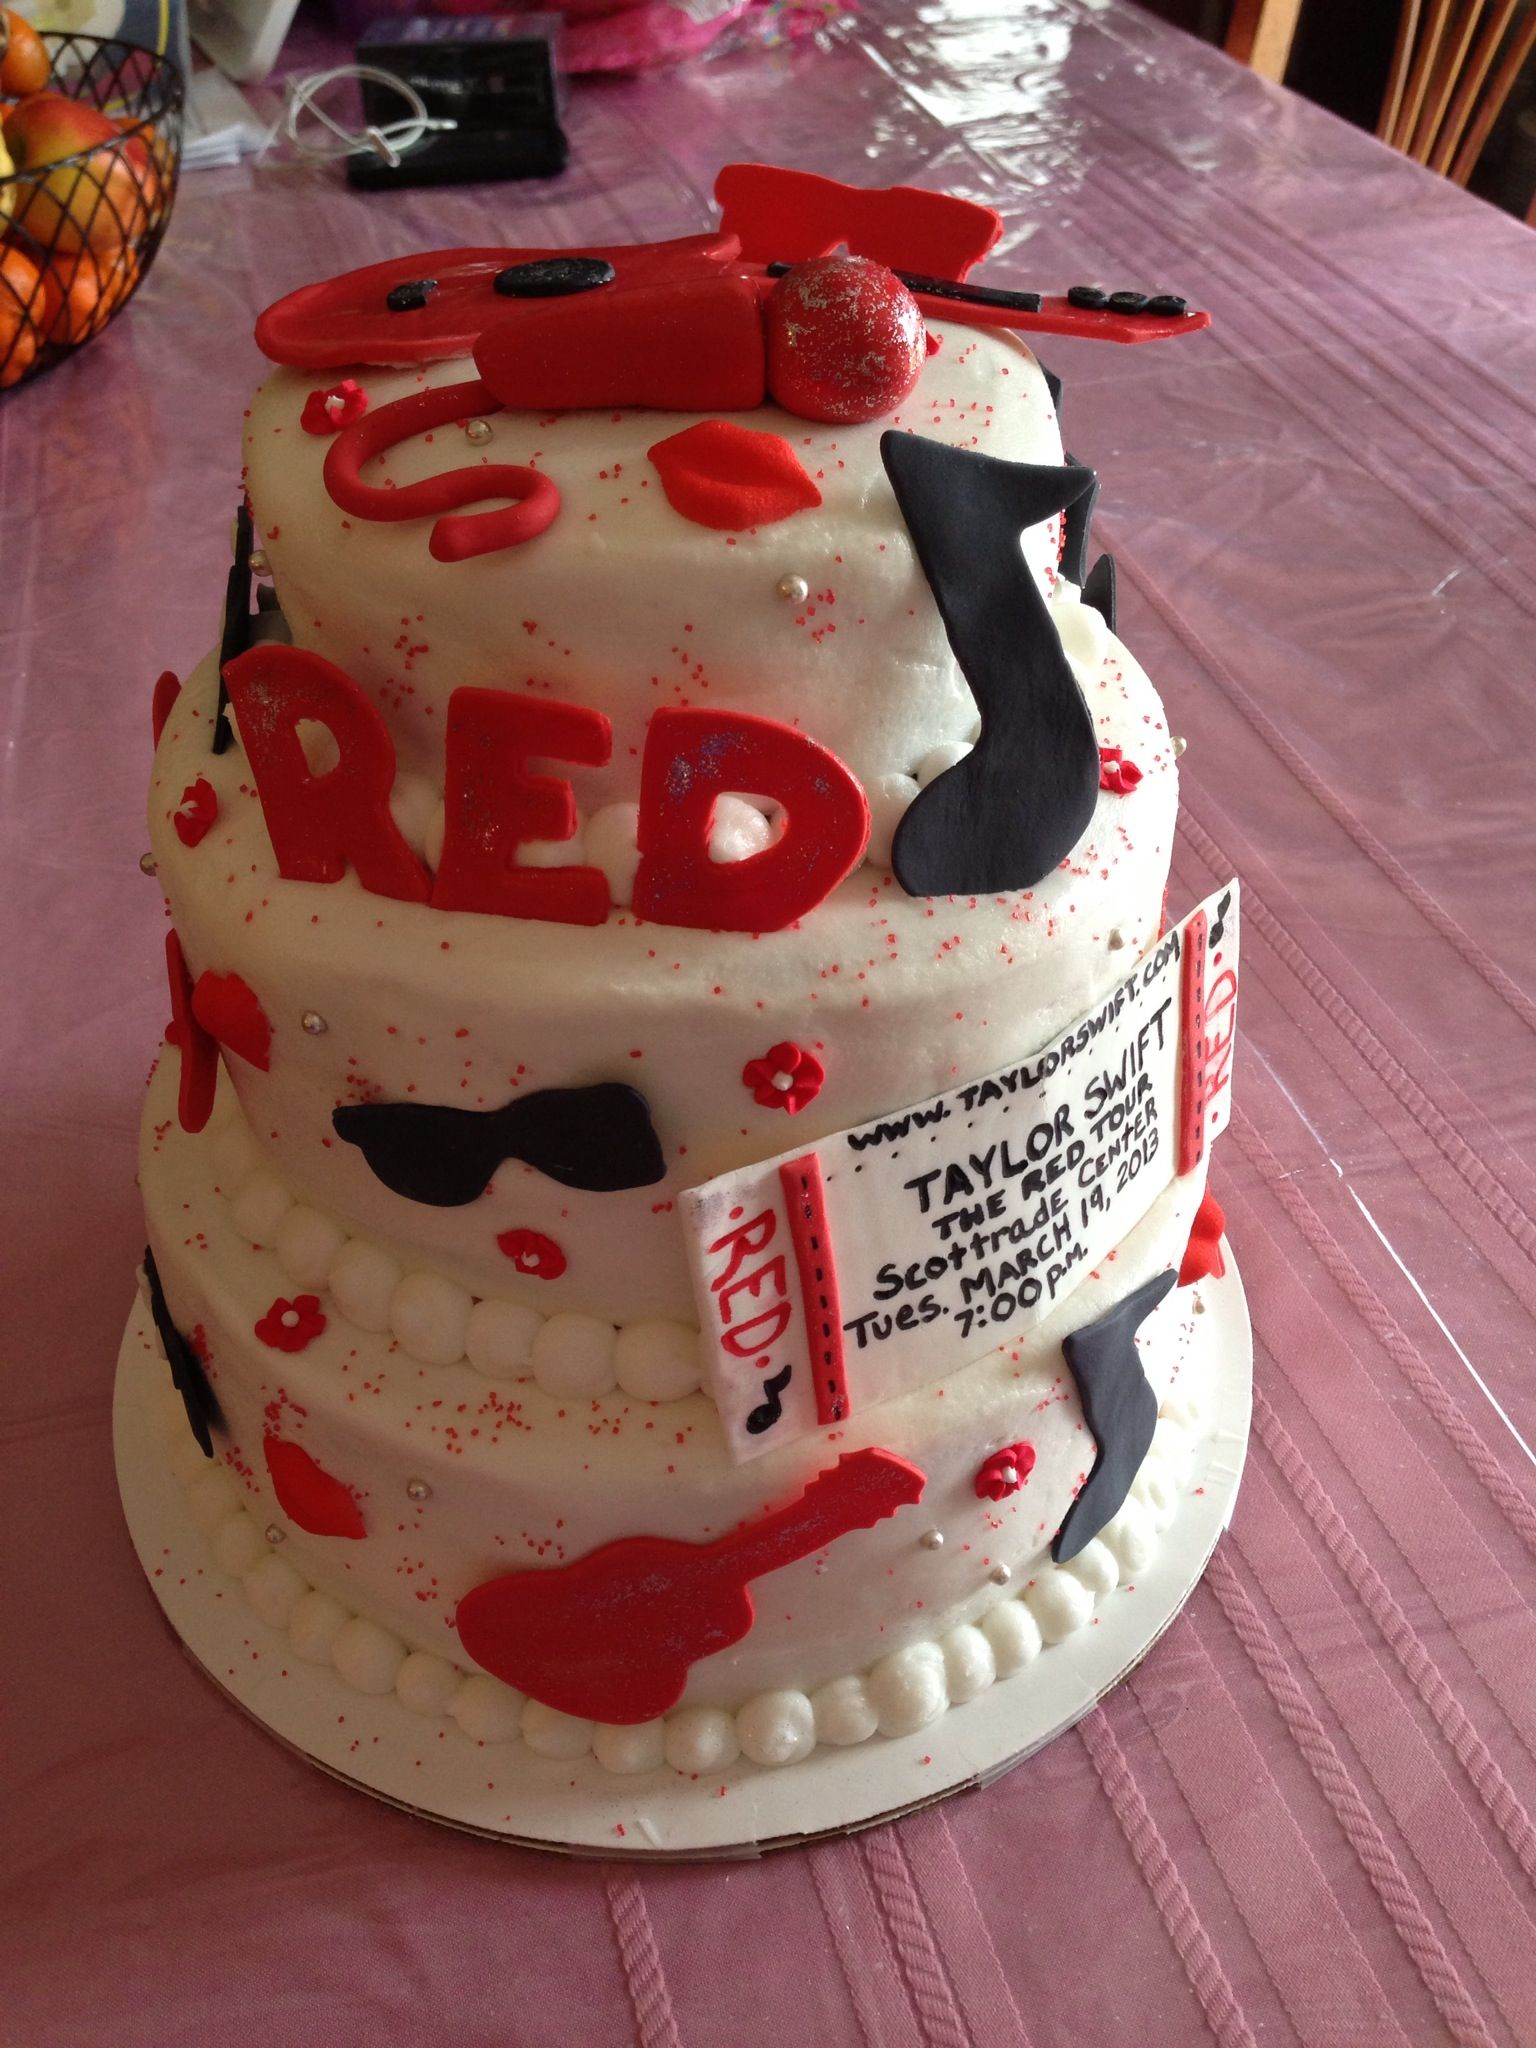 Taylor Swift Red Concert Cake Shelby Do You Want To Make This For